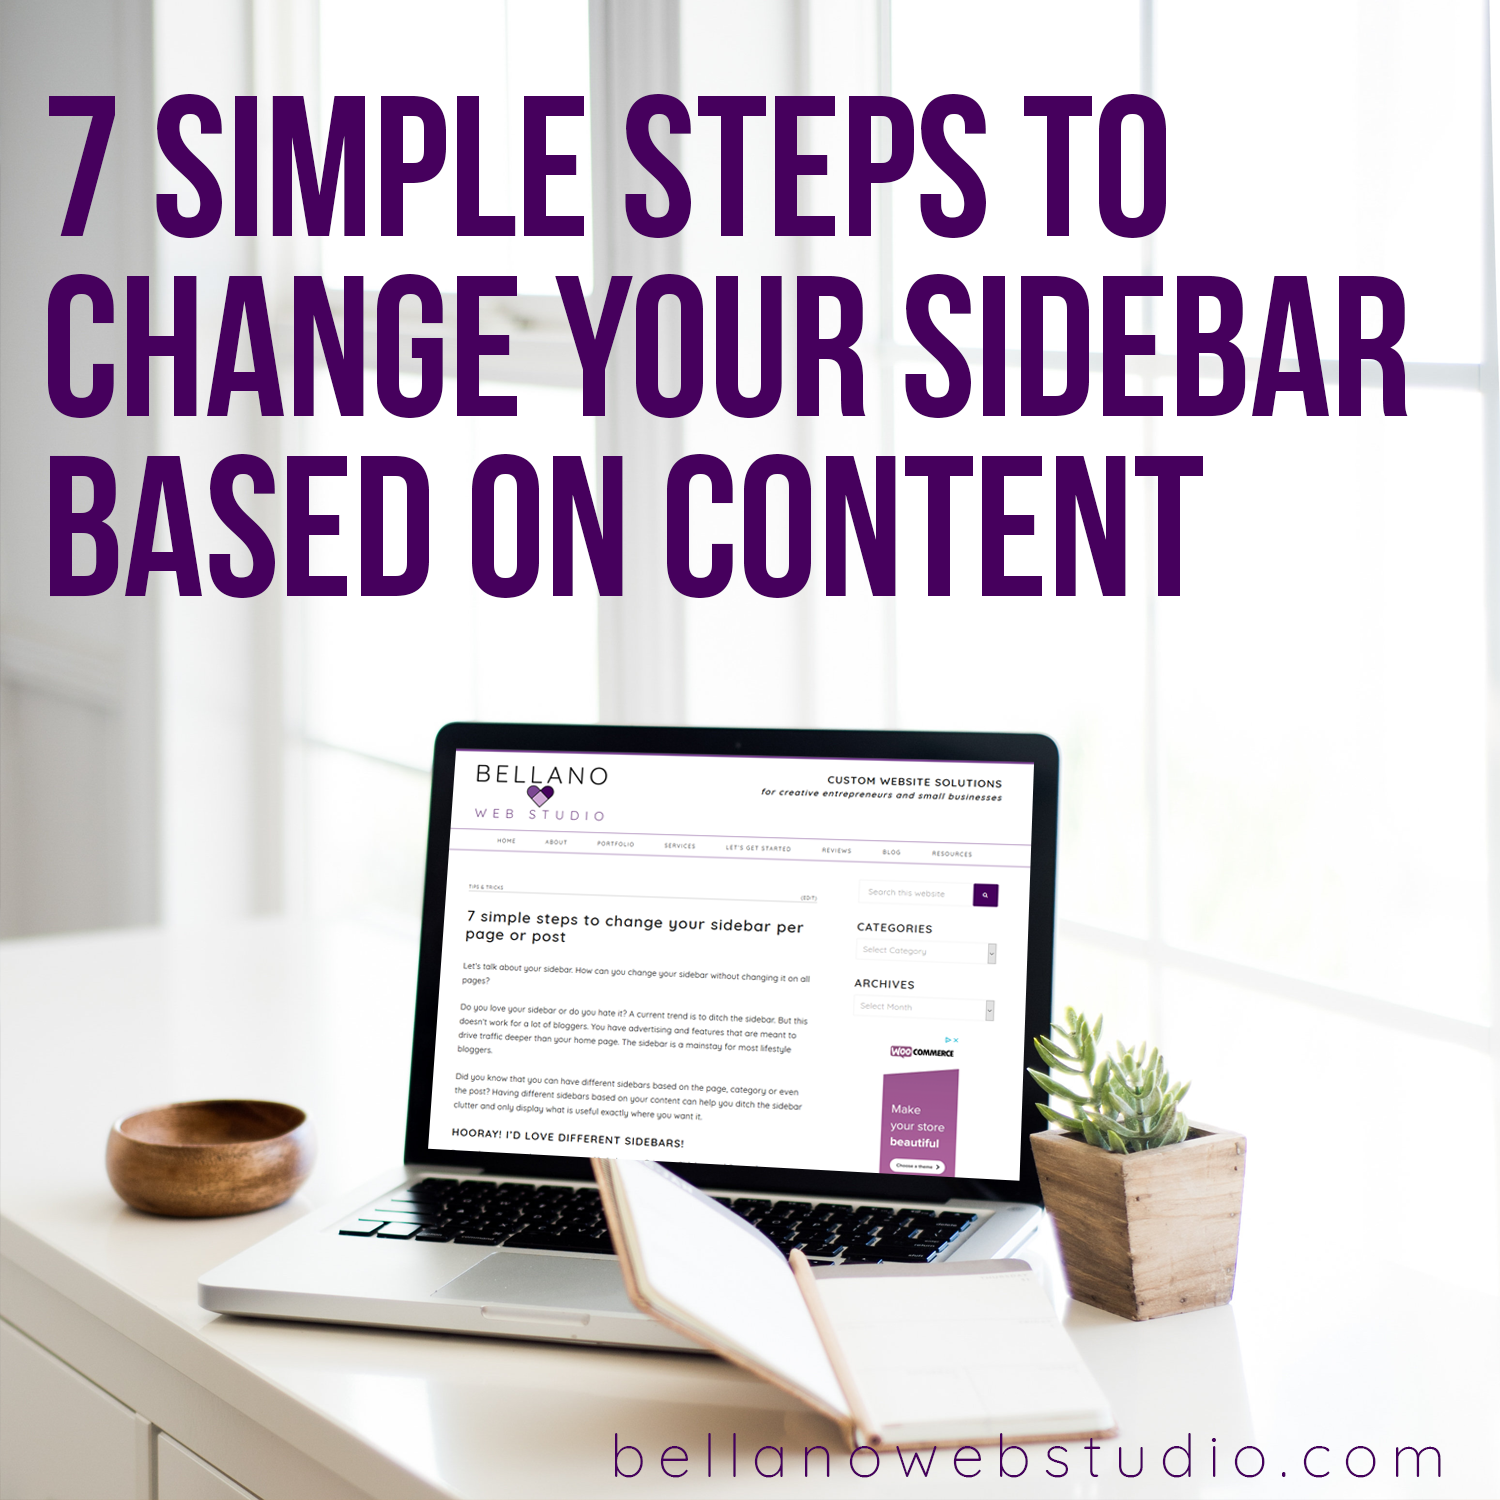 7 Simple Steps to Change Your Sidebar per Page or Post